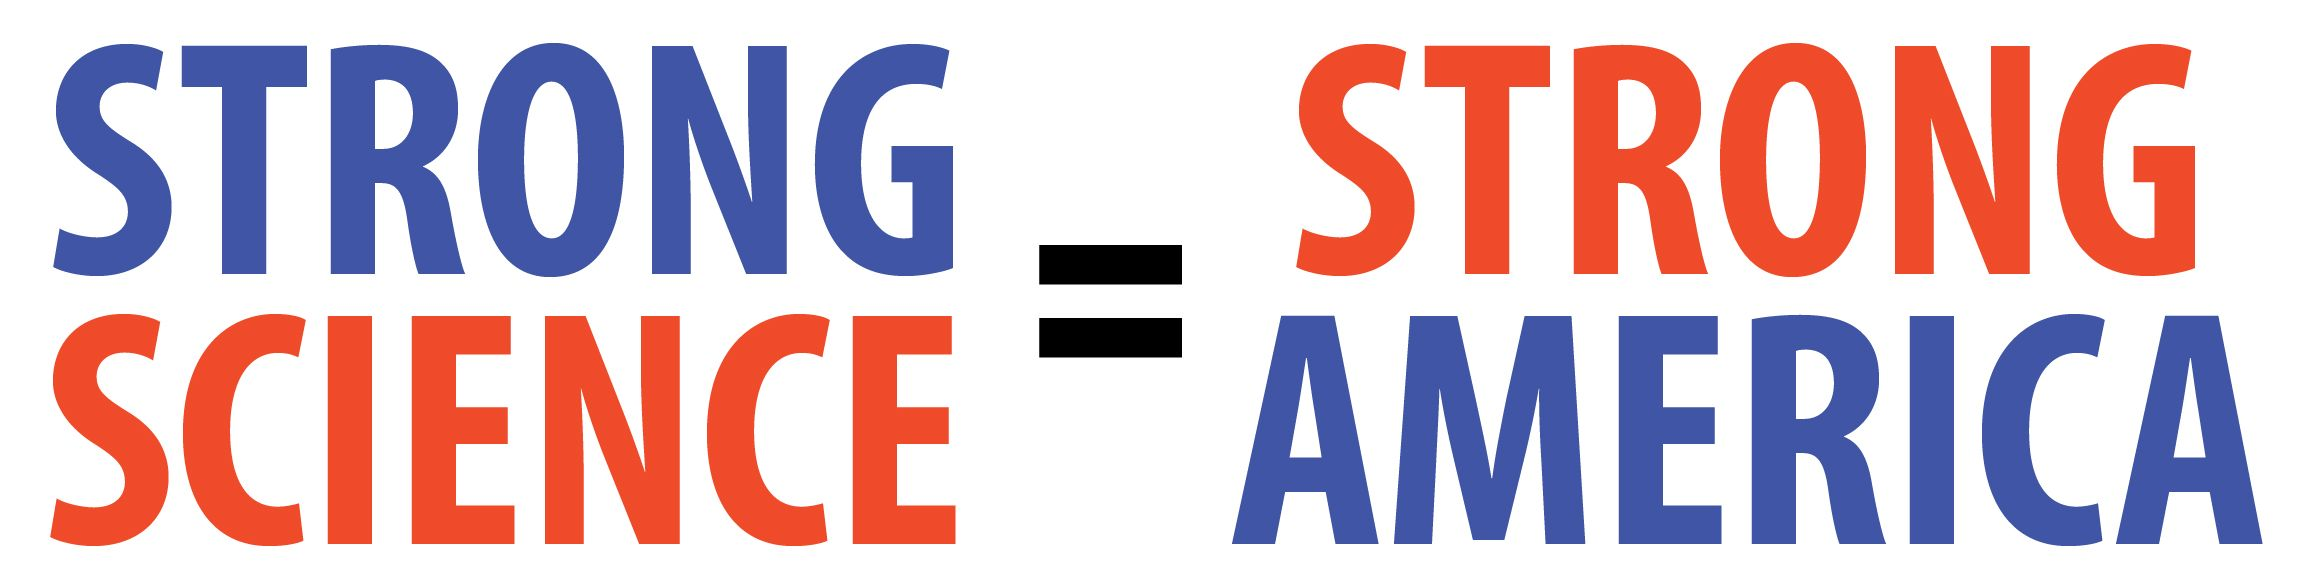 Strong Science = Strong America bumper sticker